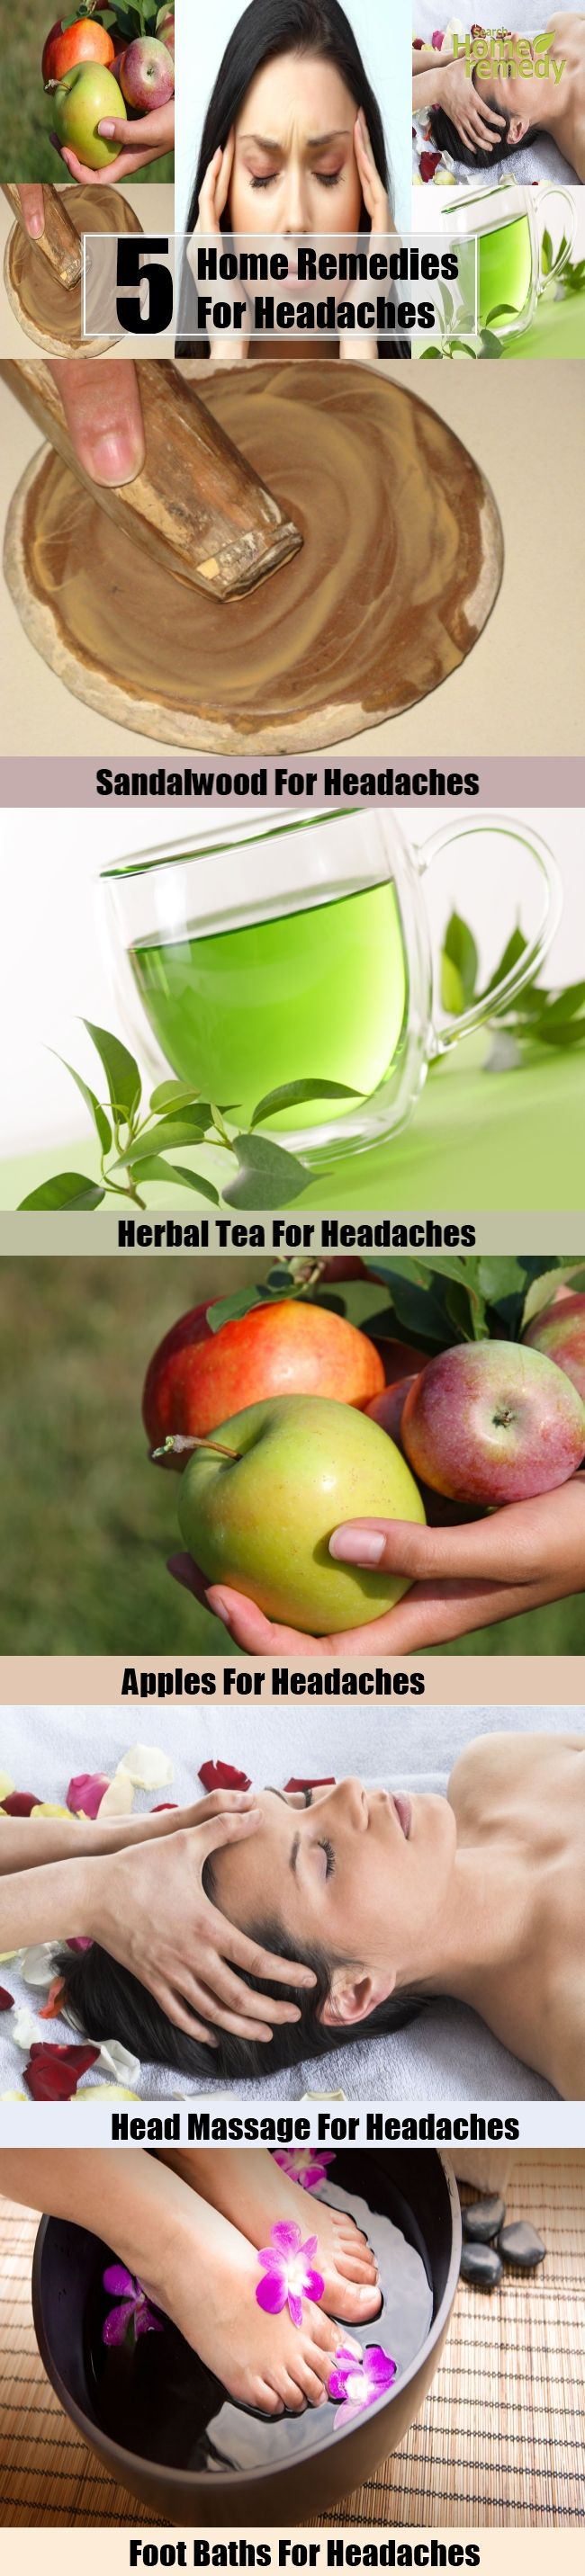 5 Home Remedies For Headaches